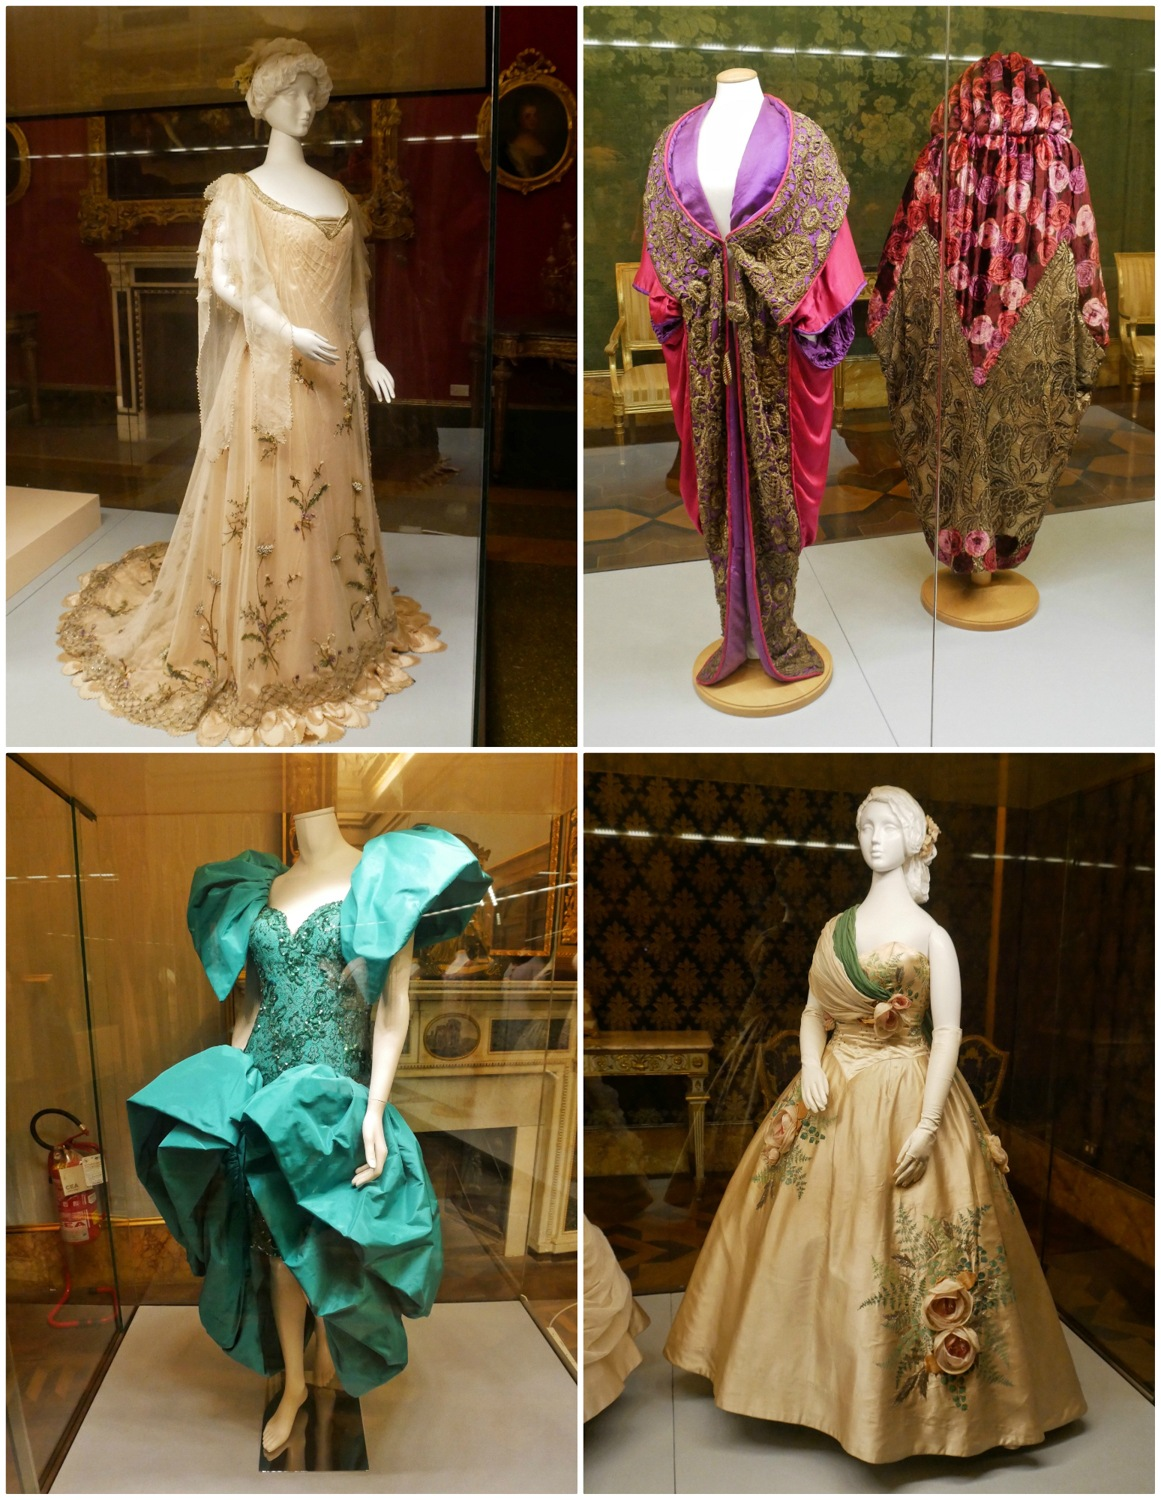 Fashion museum in Pitti Palace in Florence, Italy Photo Heatheronhertravels.com